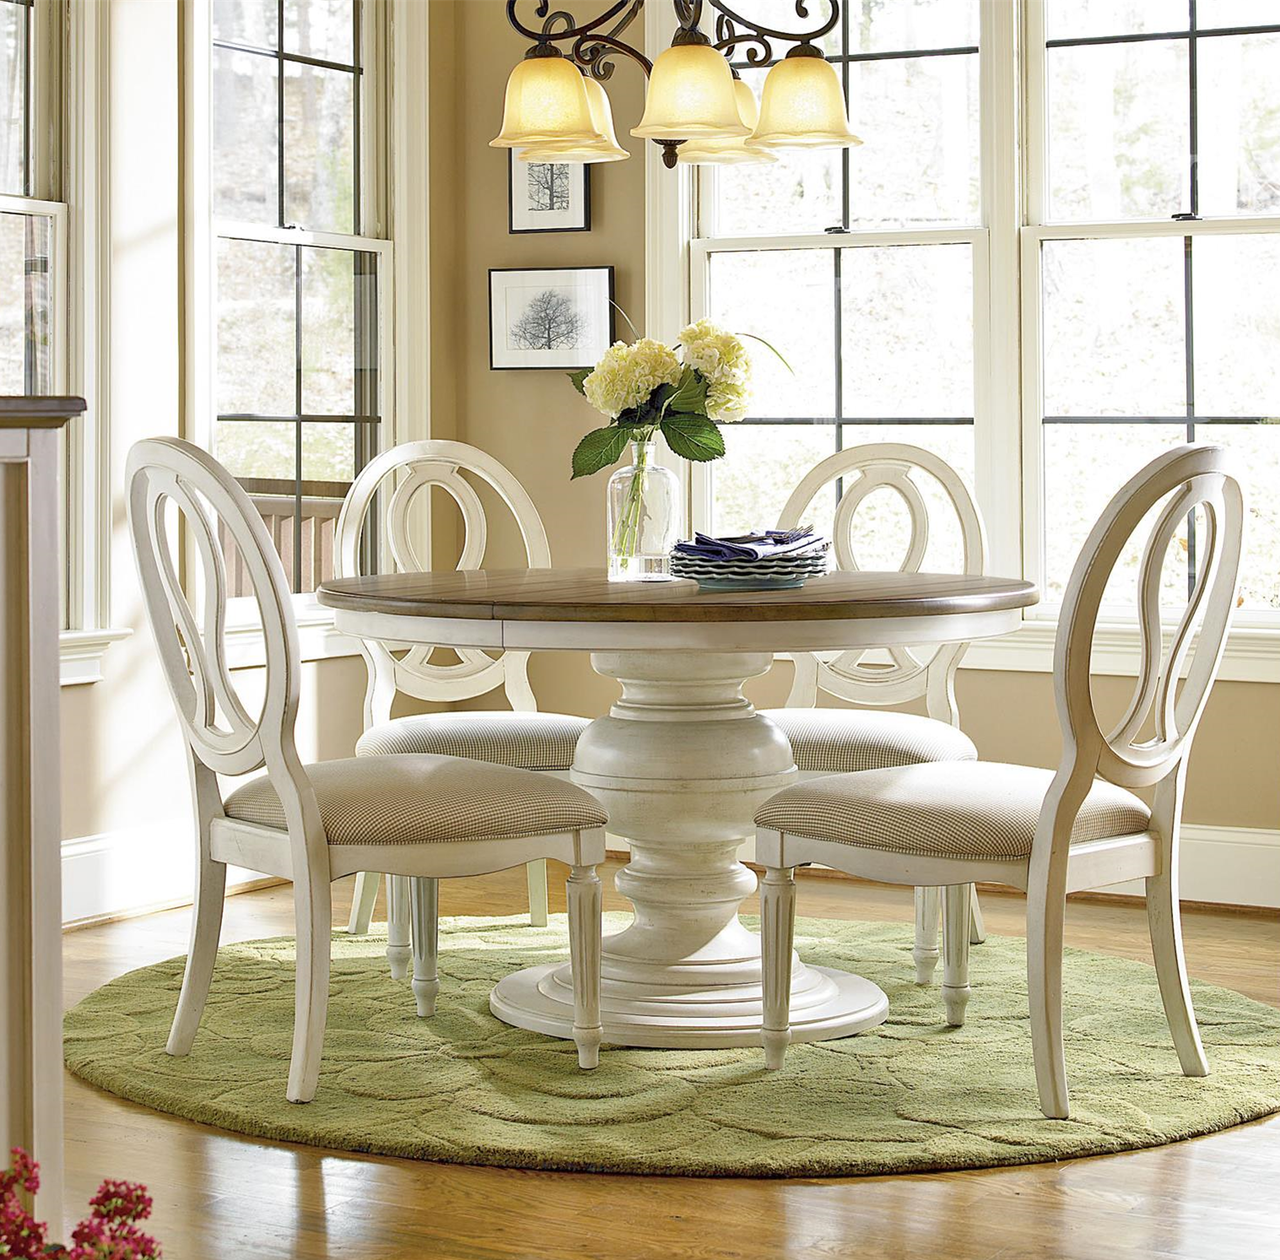 Country Chic 5 Piece Round White Dining Table Set Round Dining